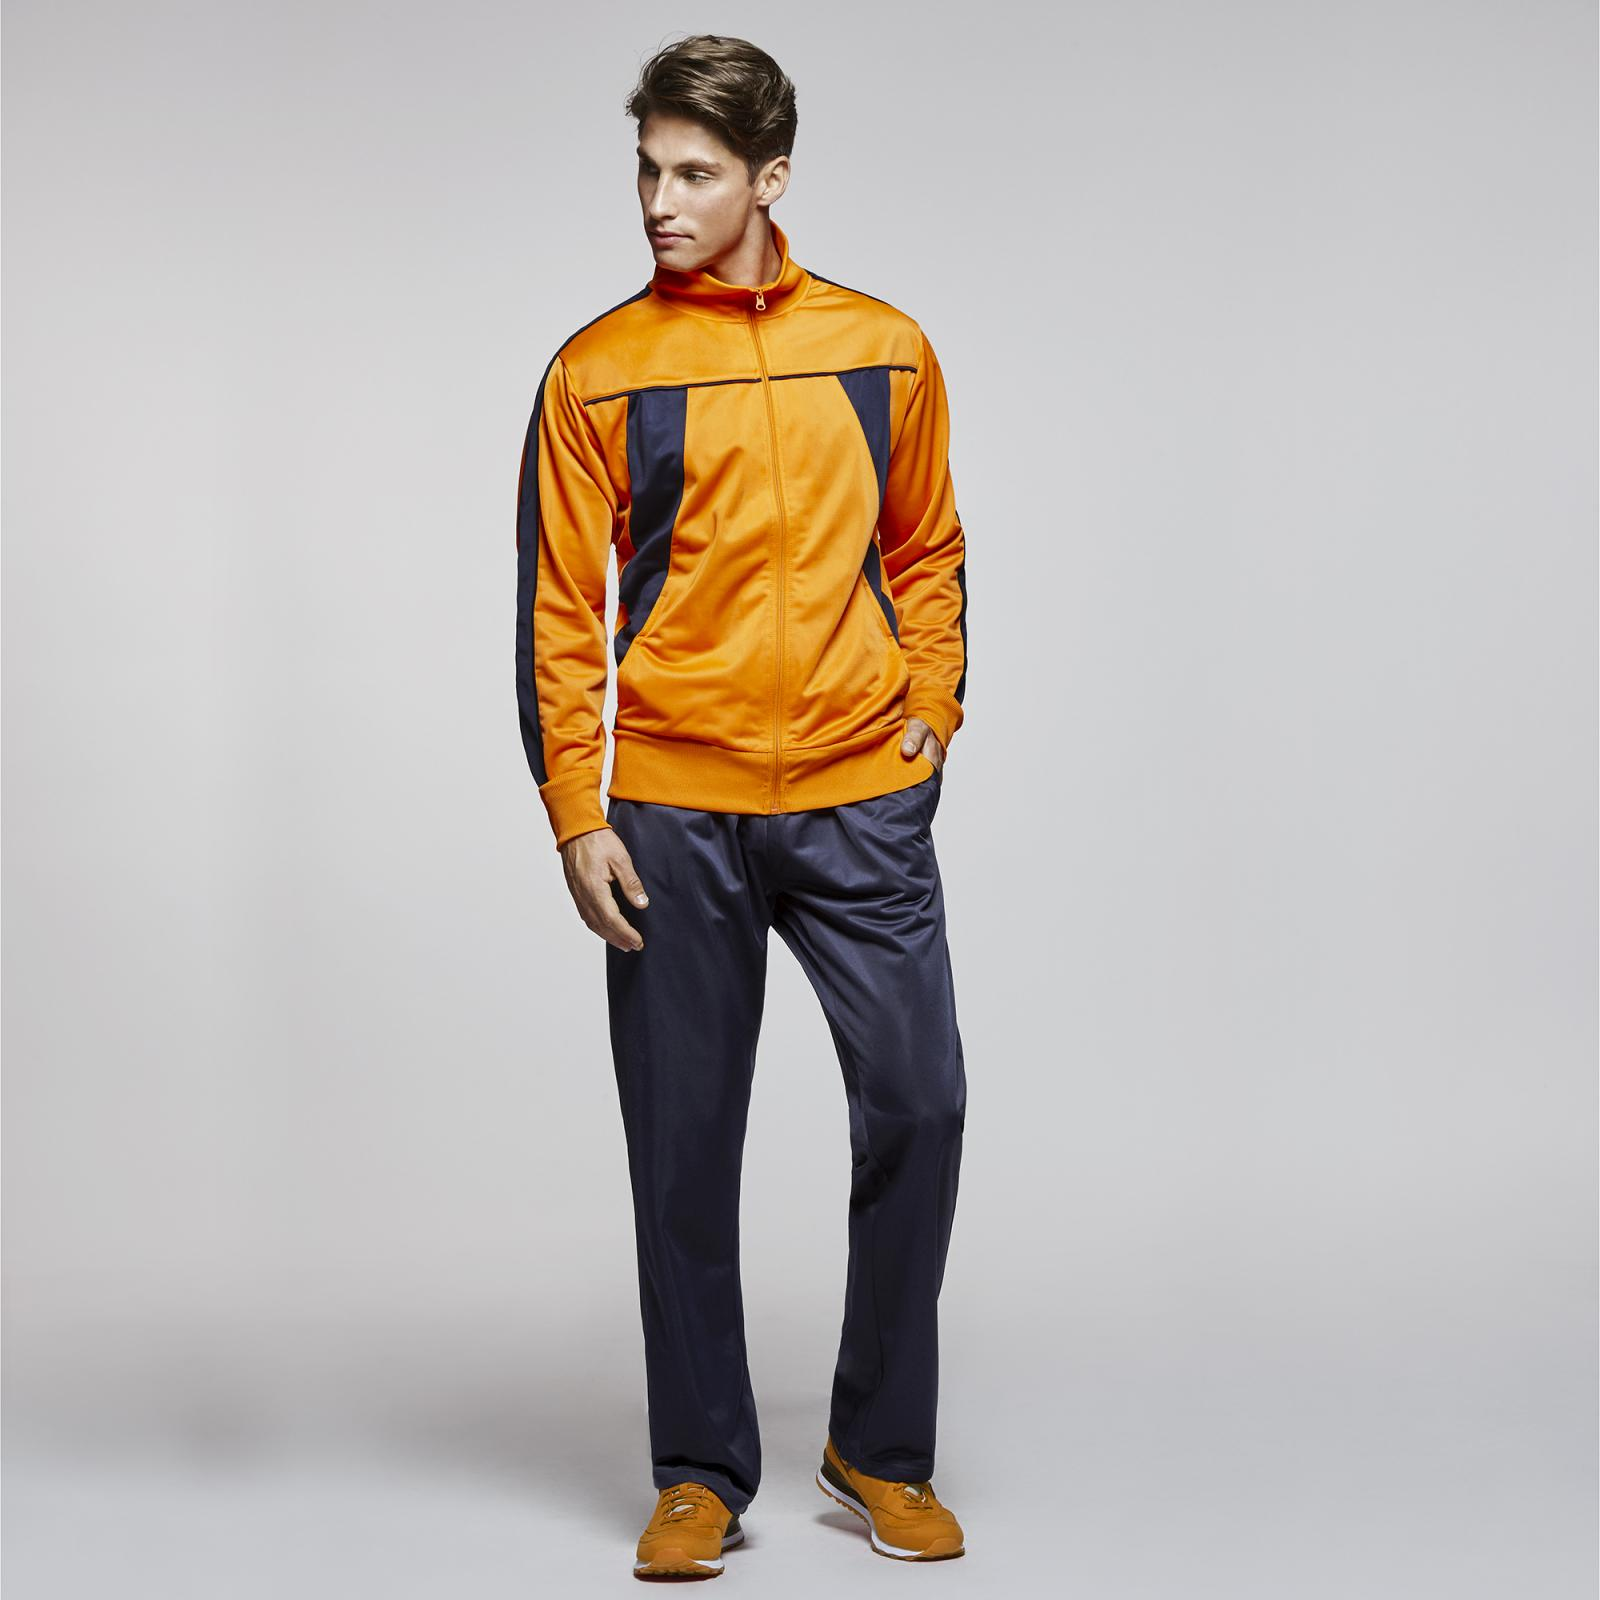 CHANDAL OLIMPO (CH0315)